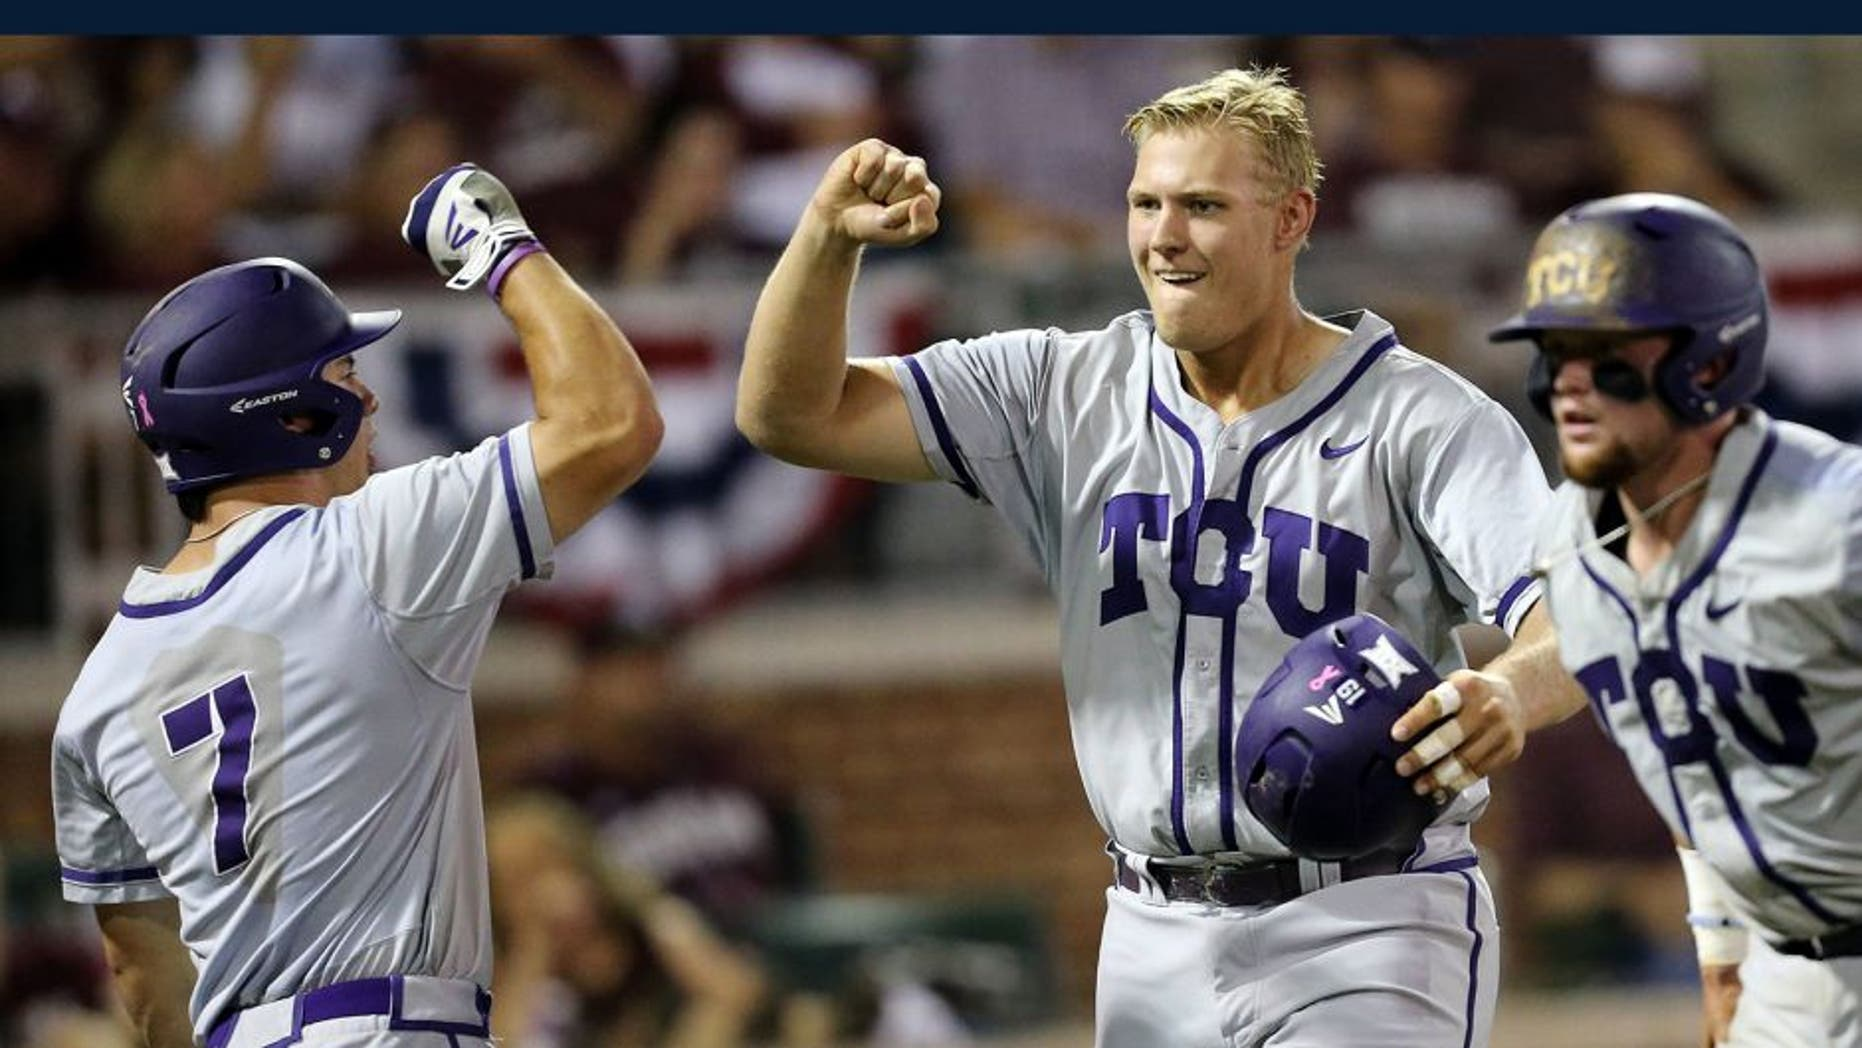 TCU's Luken Baker (19) celebrates with teammate Josh Watson (7) after a three run homer against Texas A&M during the third inning of an NCAA Super Regional baseball tournament game, Friday, June 10, 2016, in College Station, Texas. (AP Photo/Sam Craft)